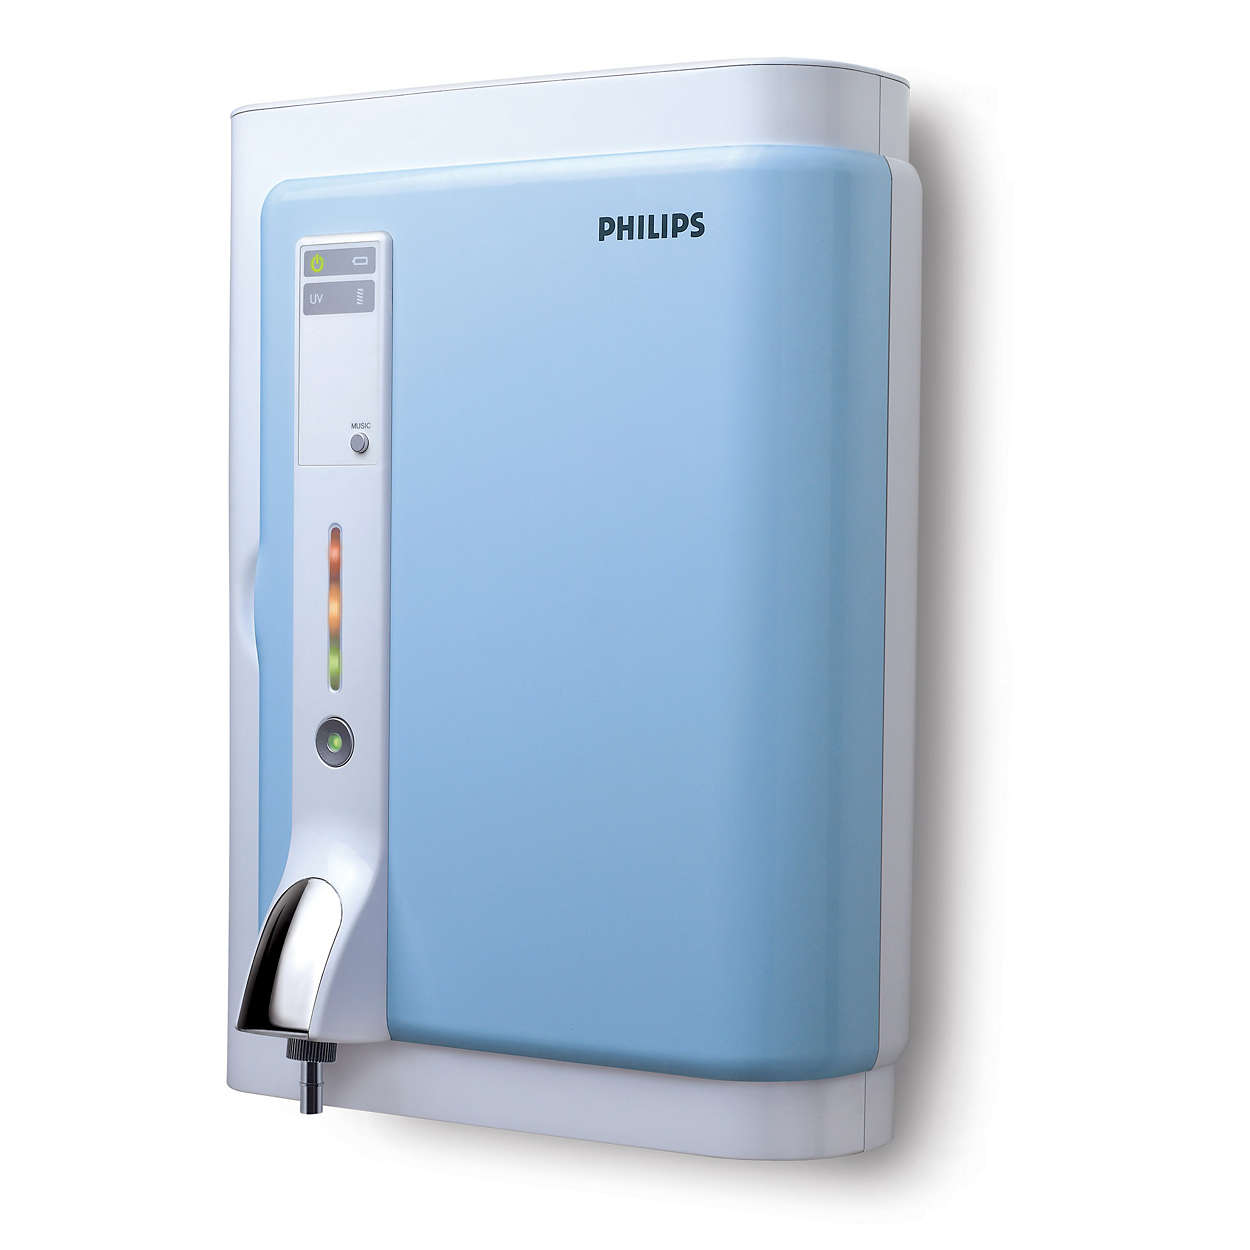 uv water purifier wp3891 01 philips. Black Bedroom Furniture Sets. Home Design Ideas